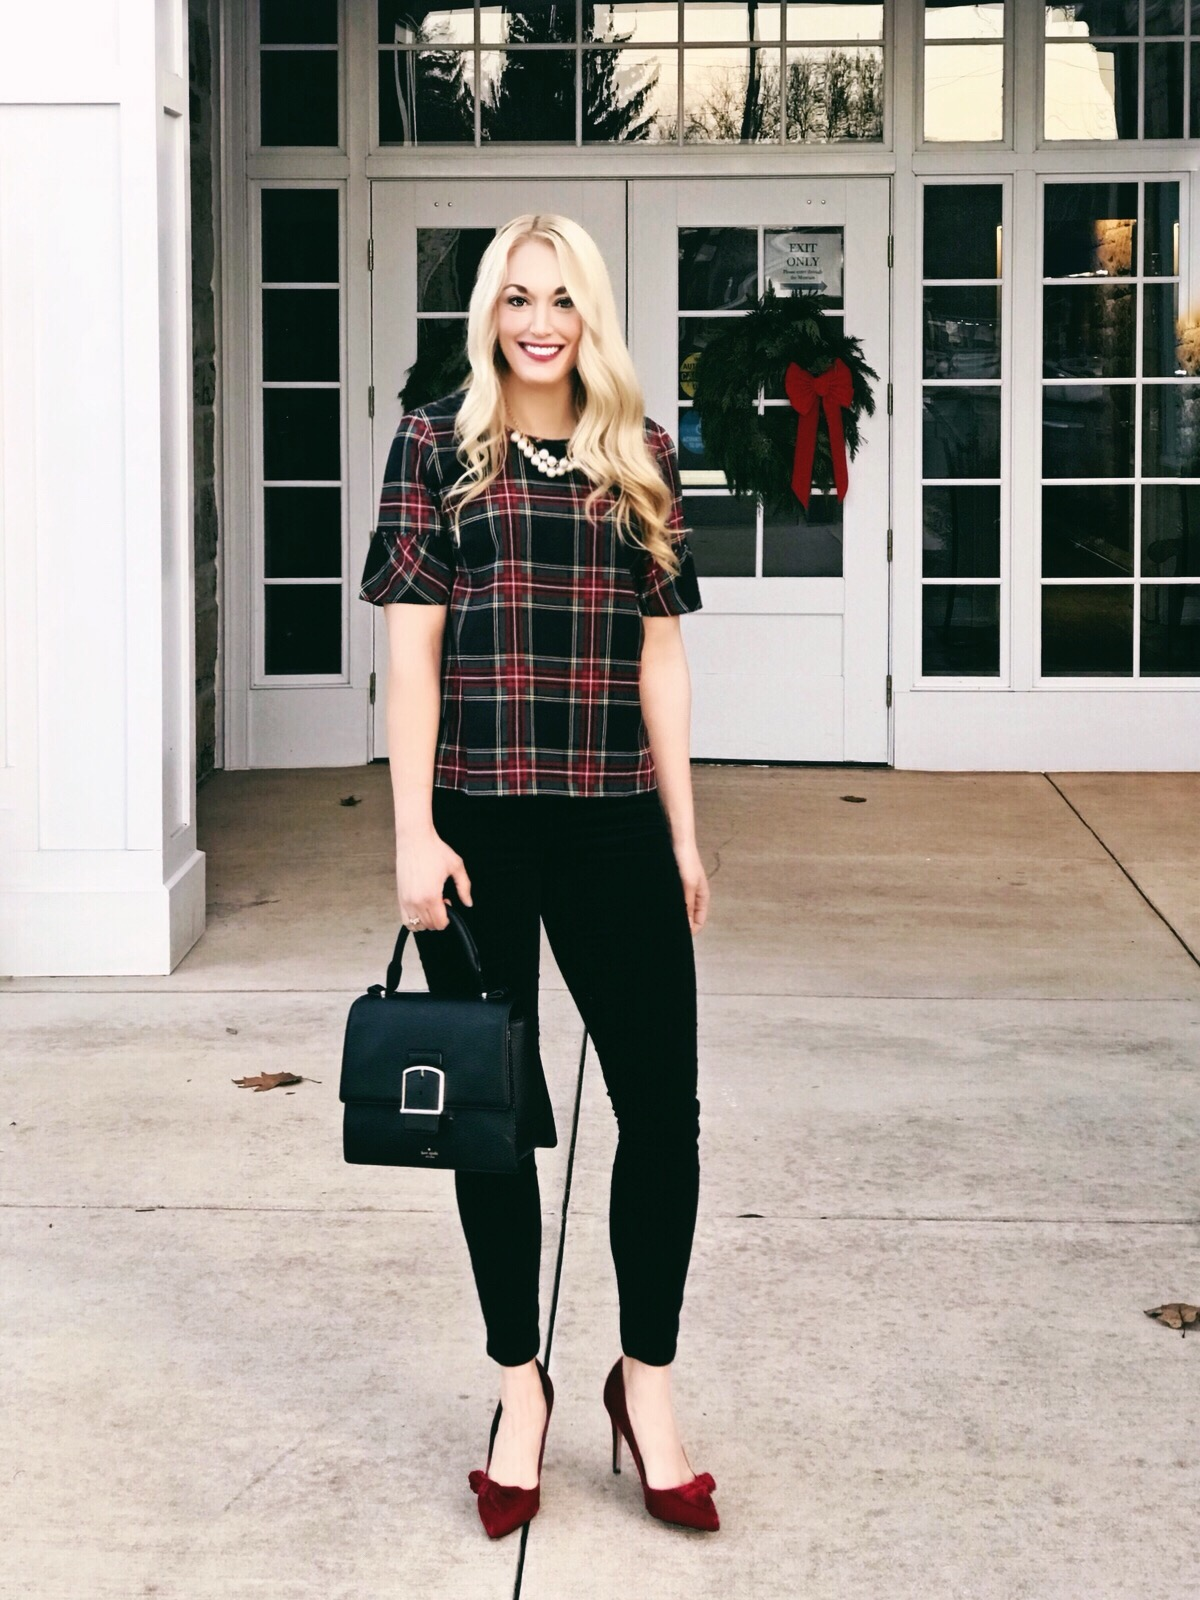 f4ac6acdf42 Something I have been trying to work on in my own wardrobe is finding  pieces that can transition from casual to dressier (think business casual  or a night ...